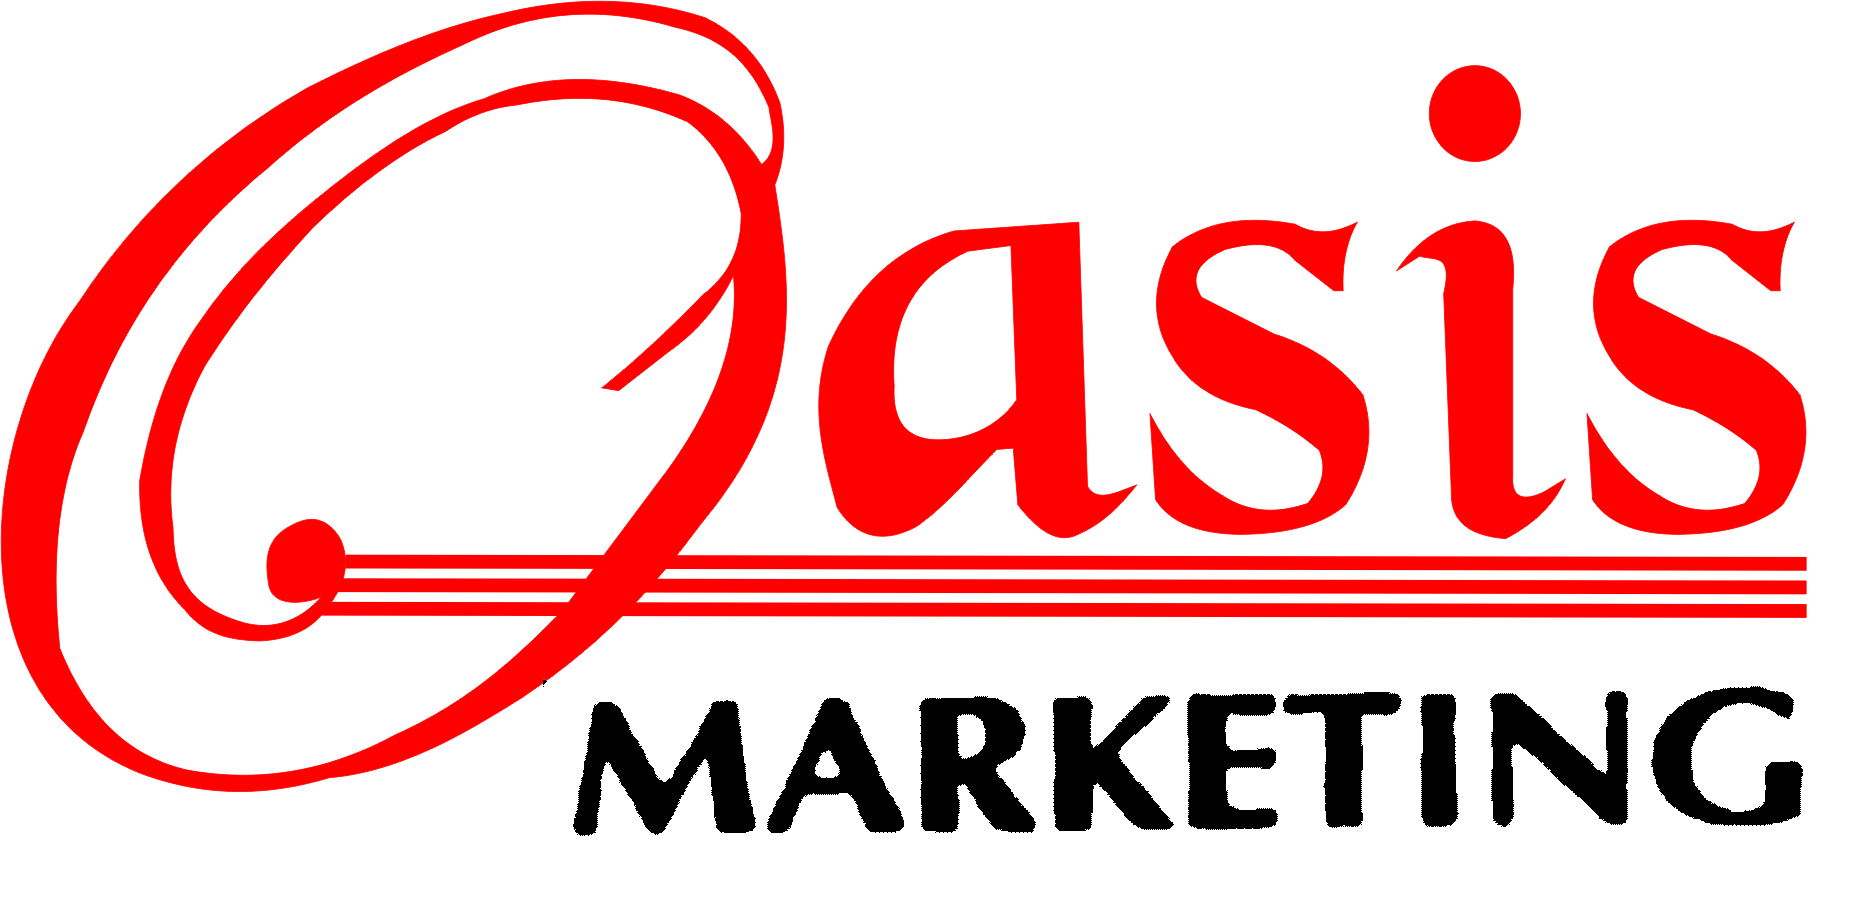 Oasis Marketing